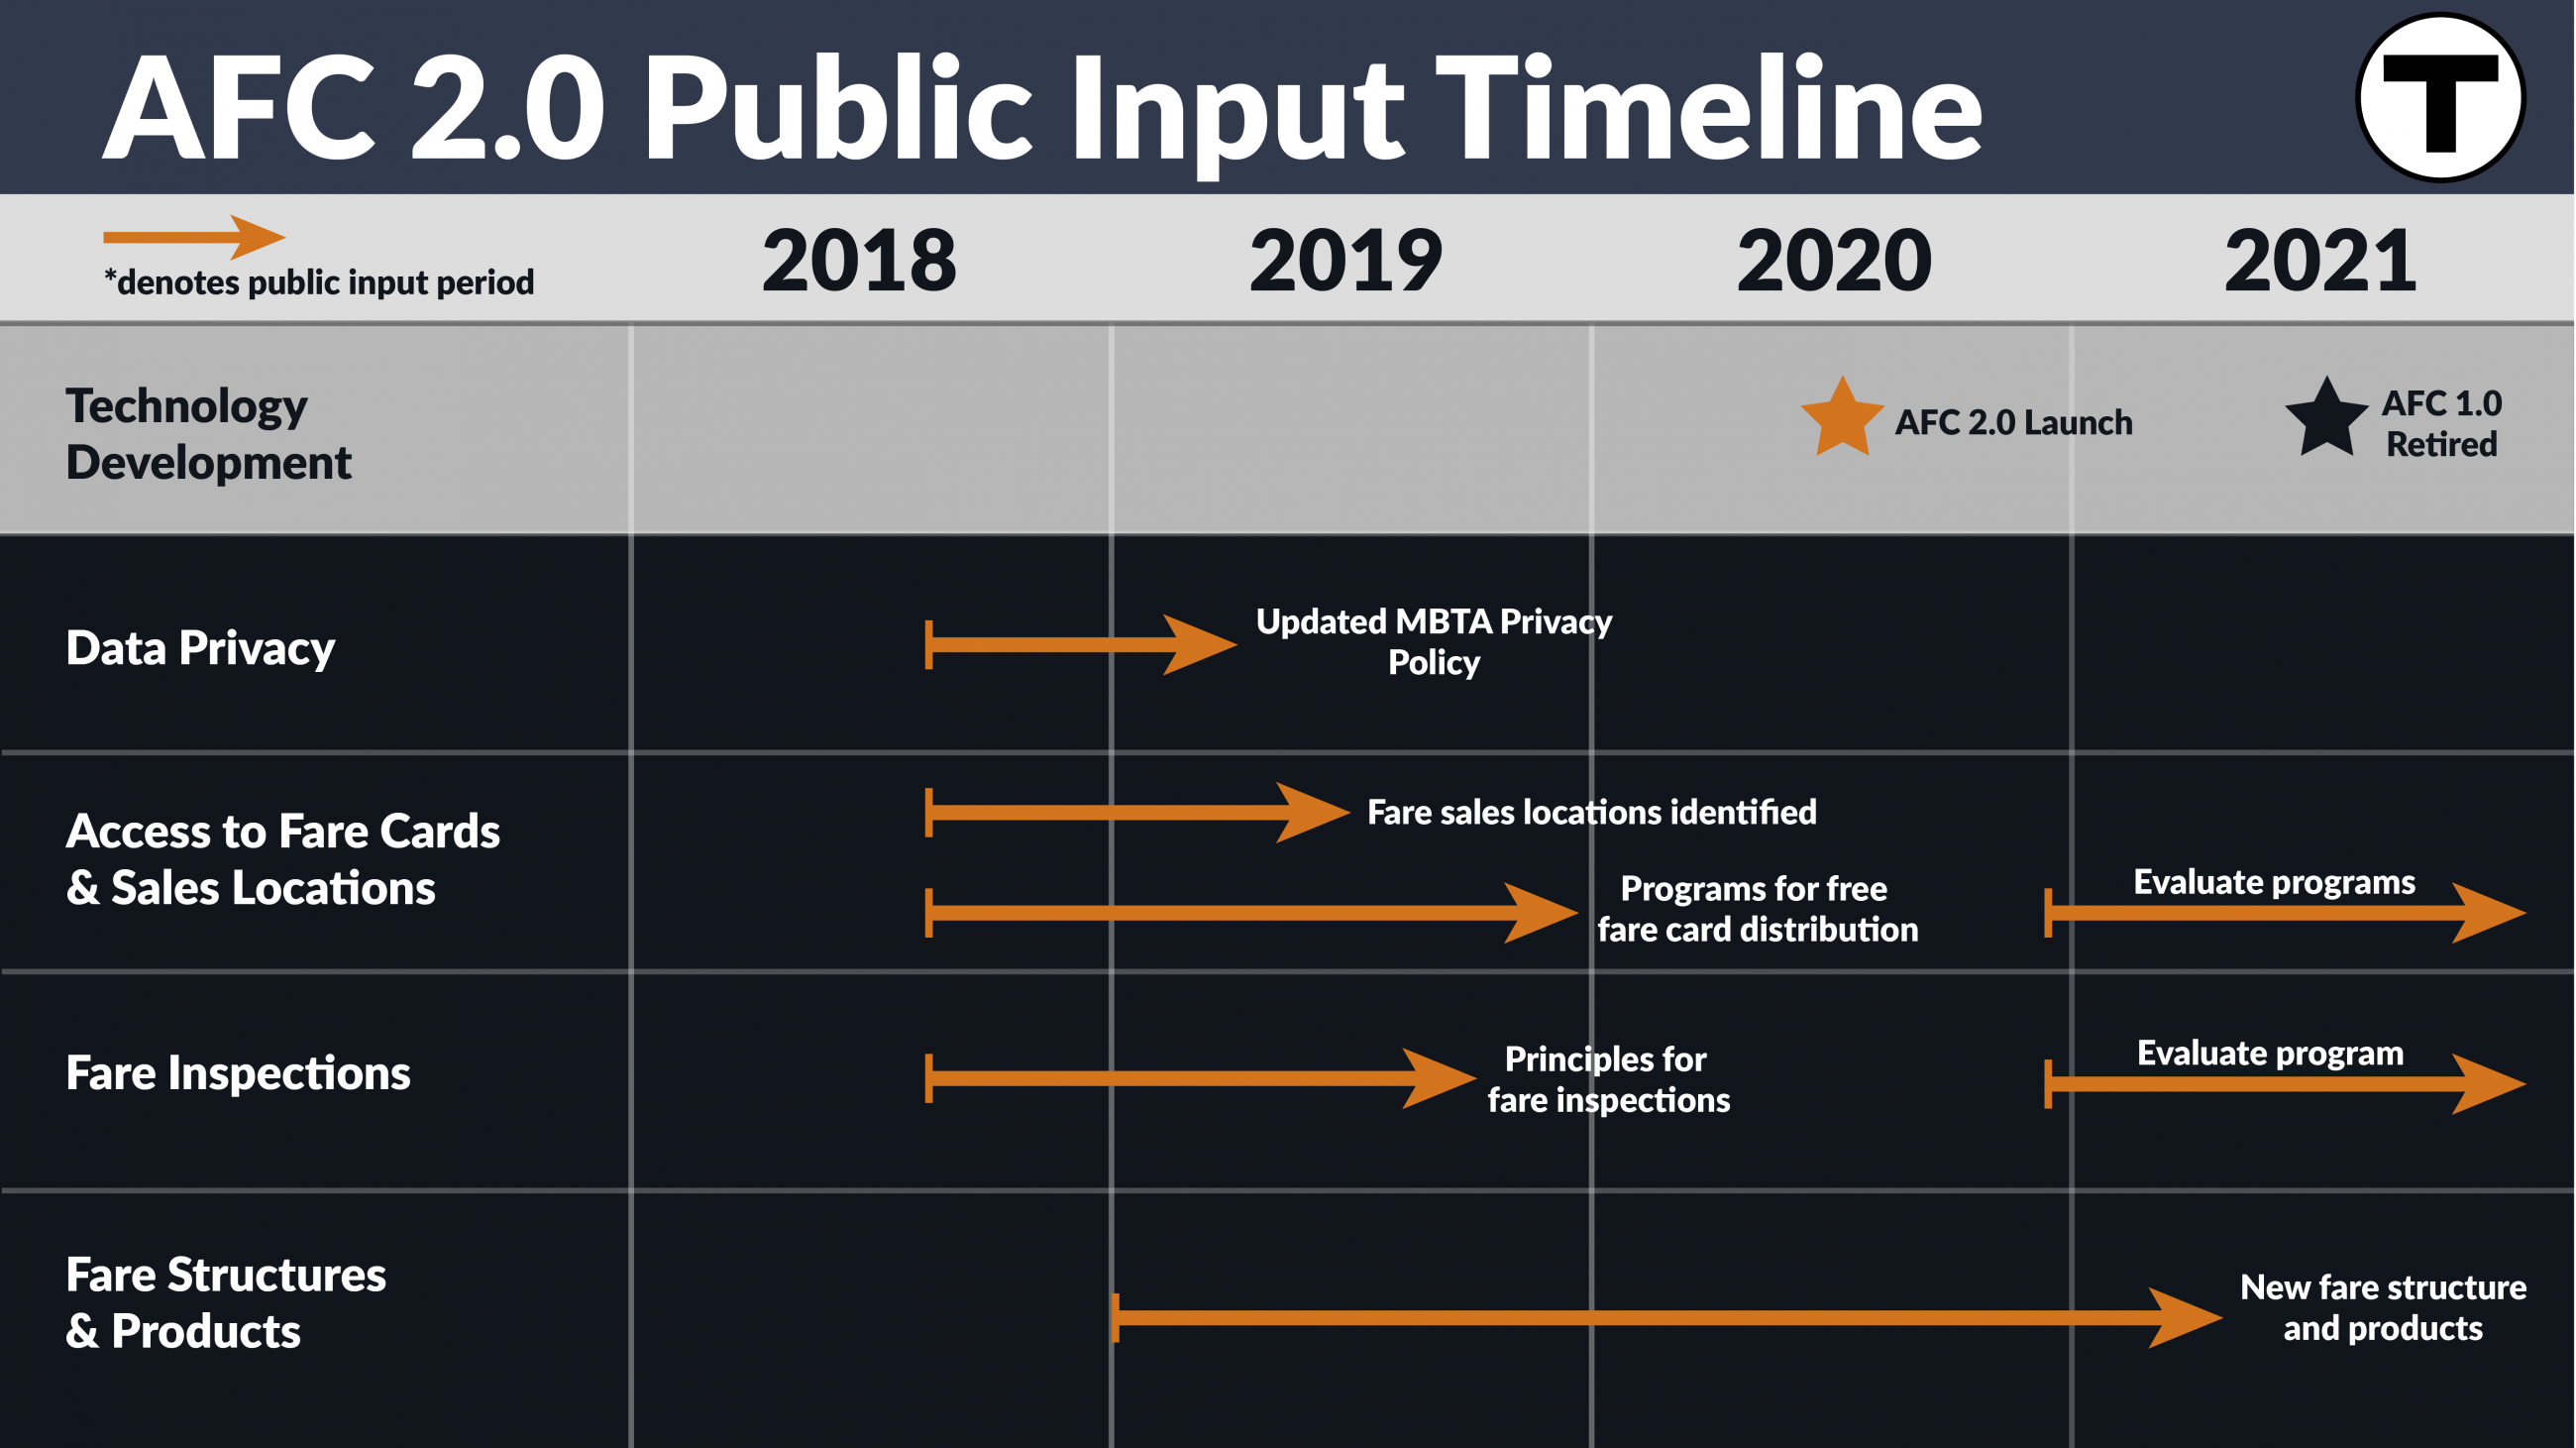 AFC 2.0 public input timeline 2018 - 2021. See text below for details.